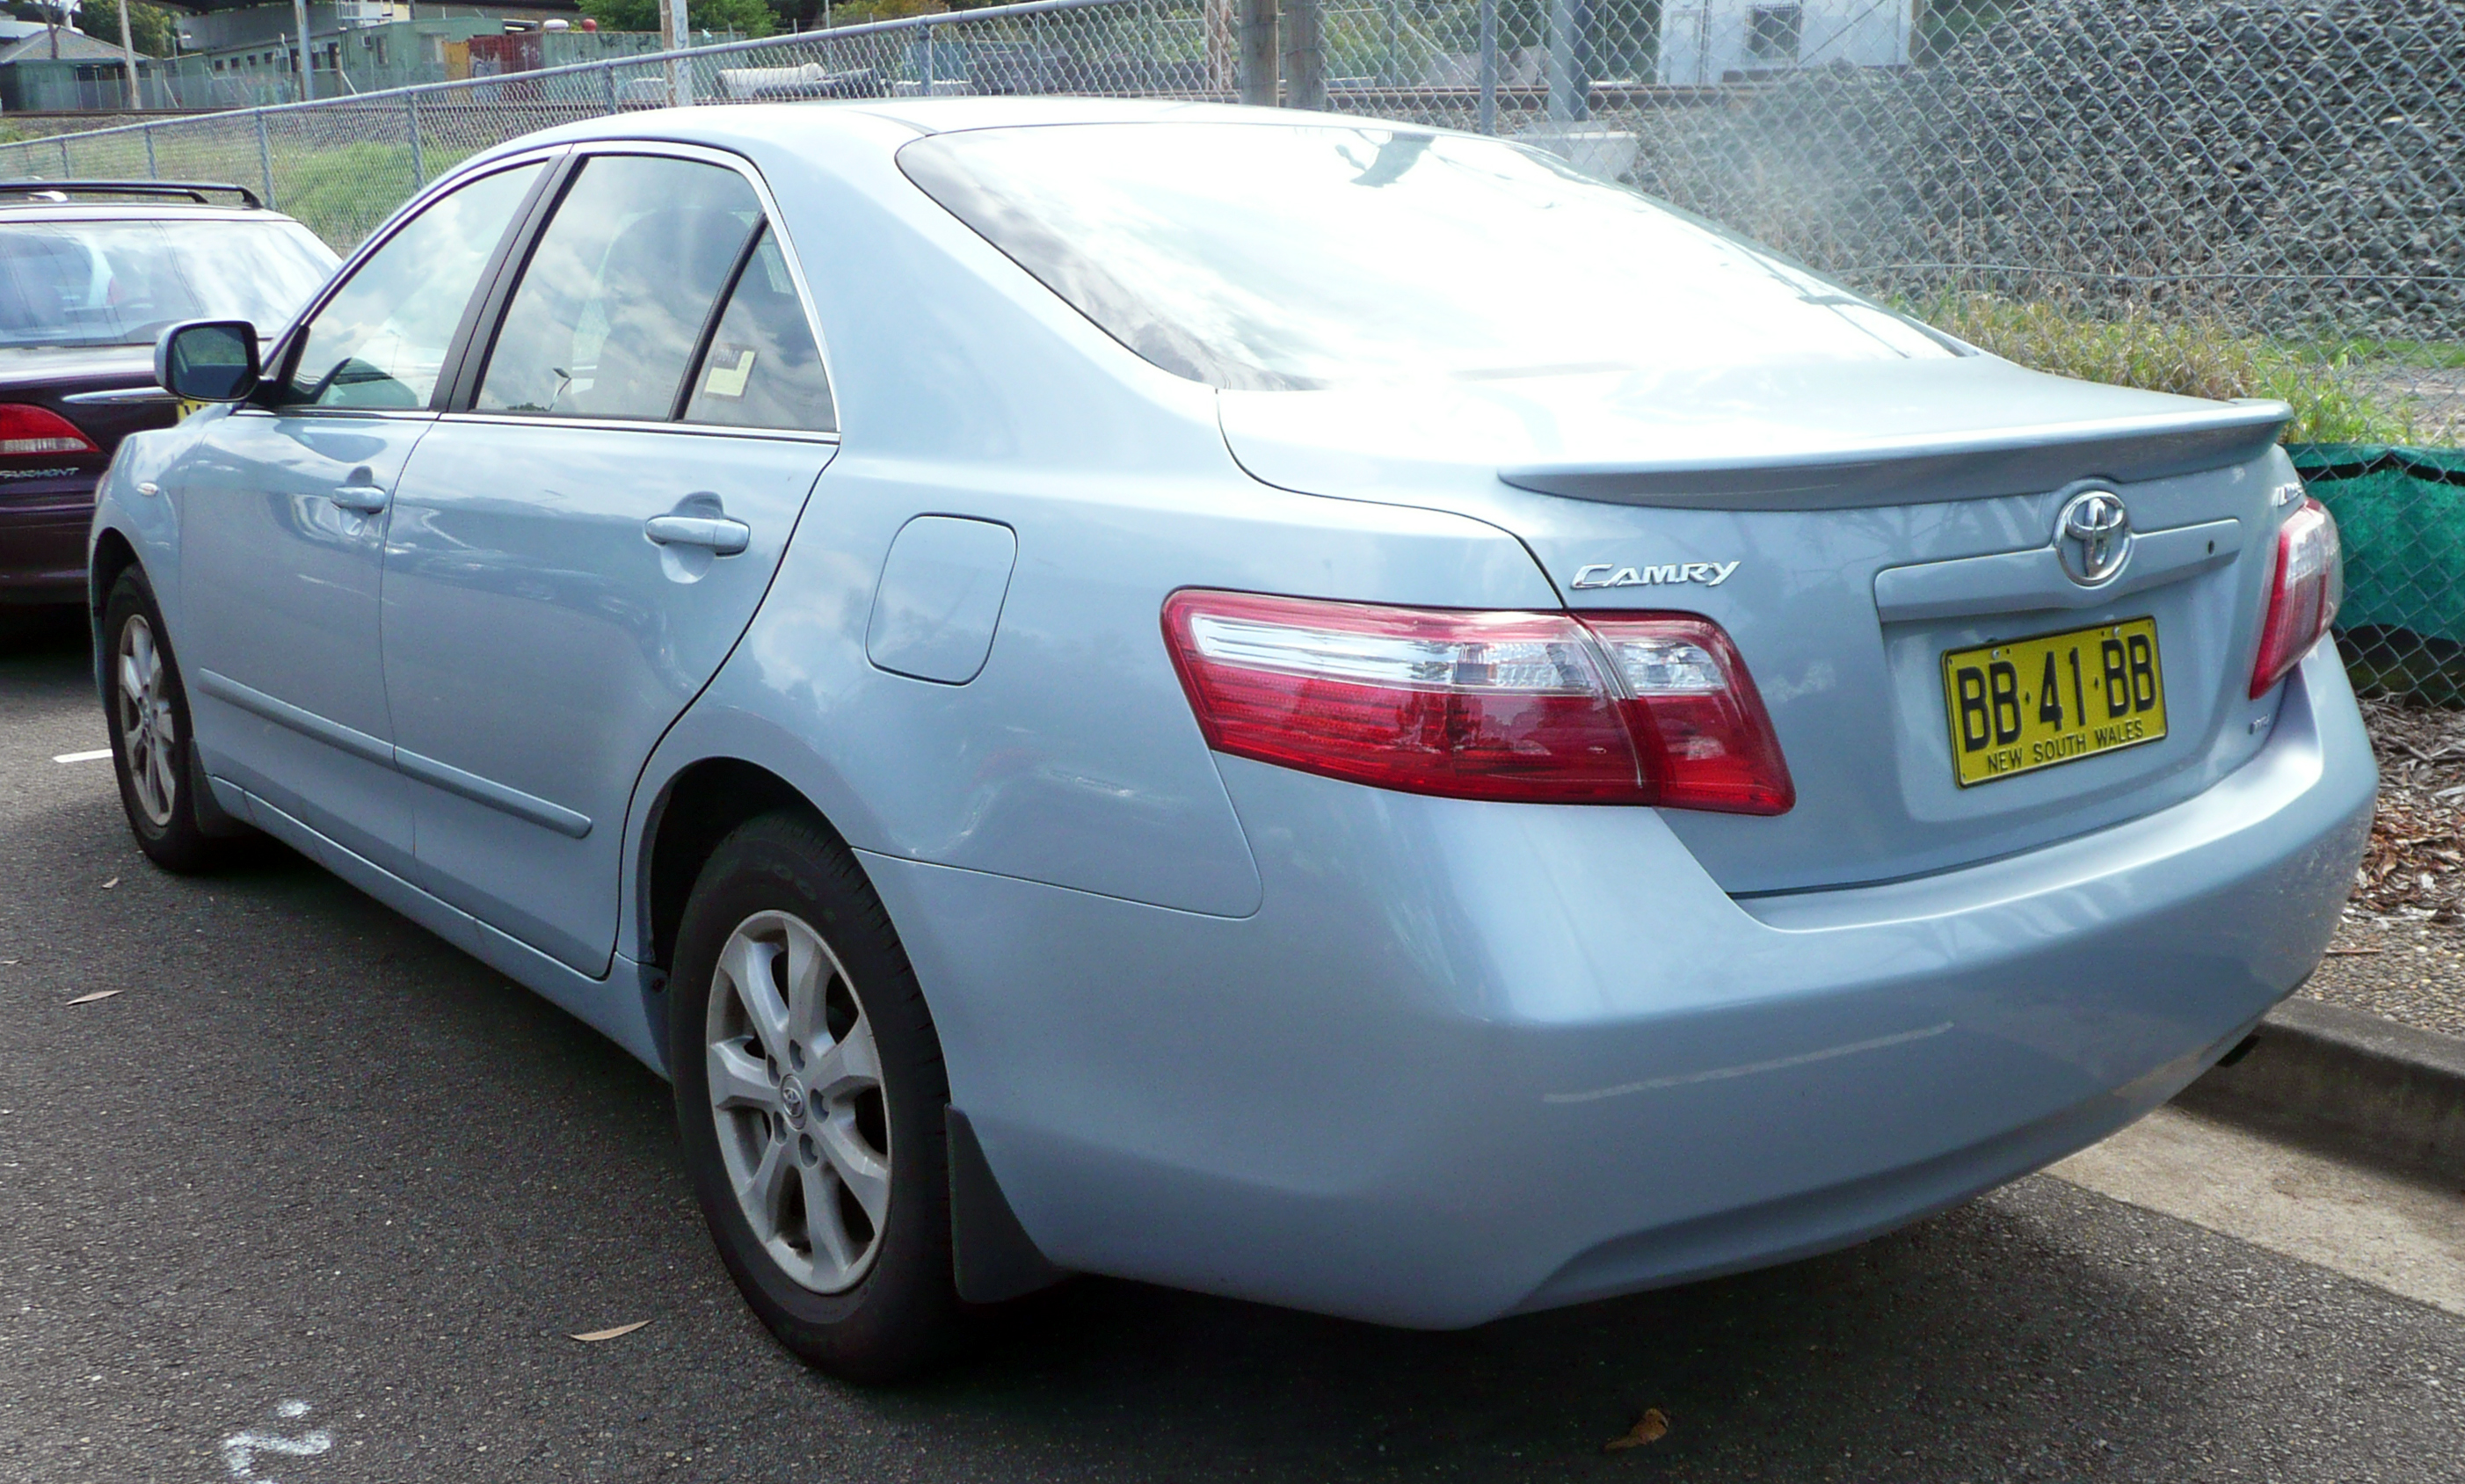 Toyota Camry Xv40 Wikipedia Le Engine Diagram Of 2012 Ateva Australia Pre Facelift